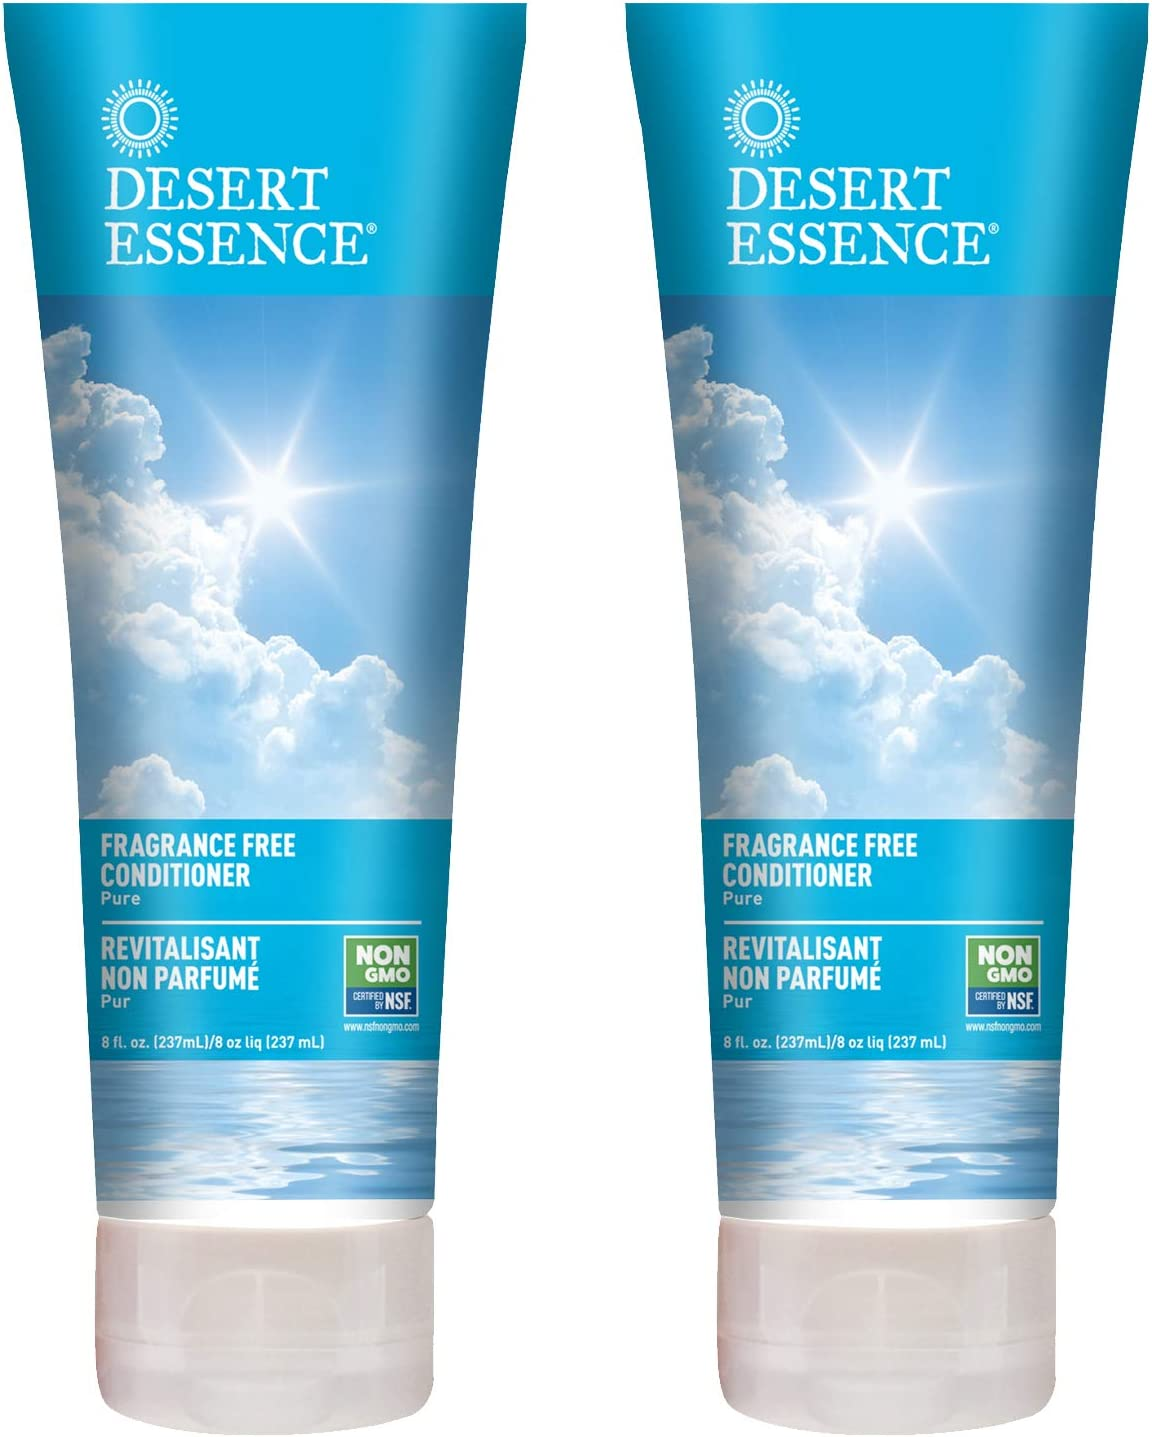 Desert Essence Fragrance Free Conditioner - Pure - 8 Fl Ounce - Pack of 2 - Gloss & Shine - Smoothes & Softens Hair - No Oil Residue - Antioxidants - Green Tea - Jojoba Oil - Vitamin B5